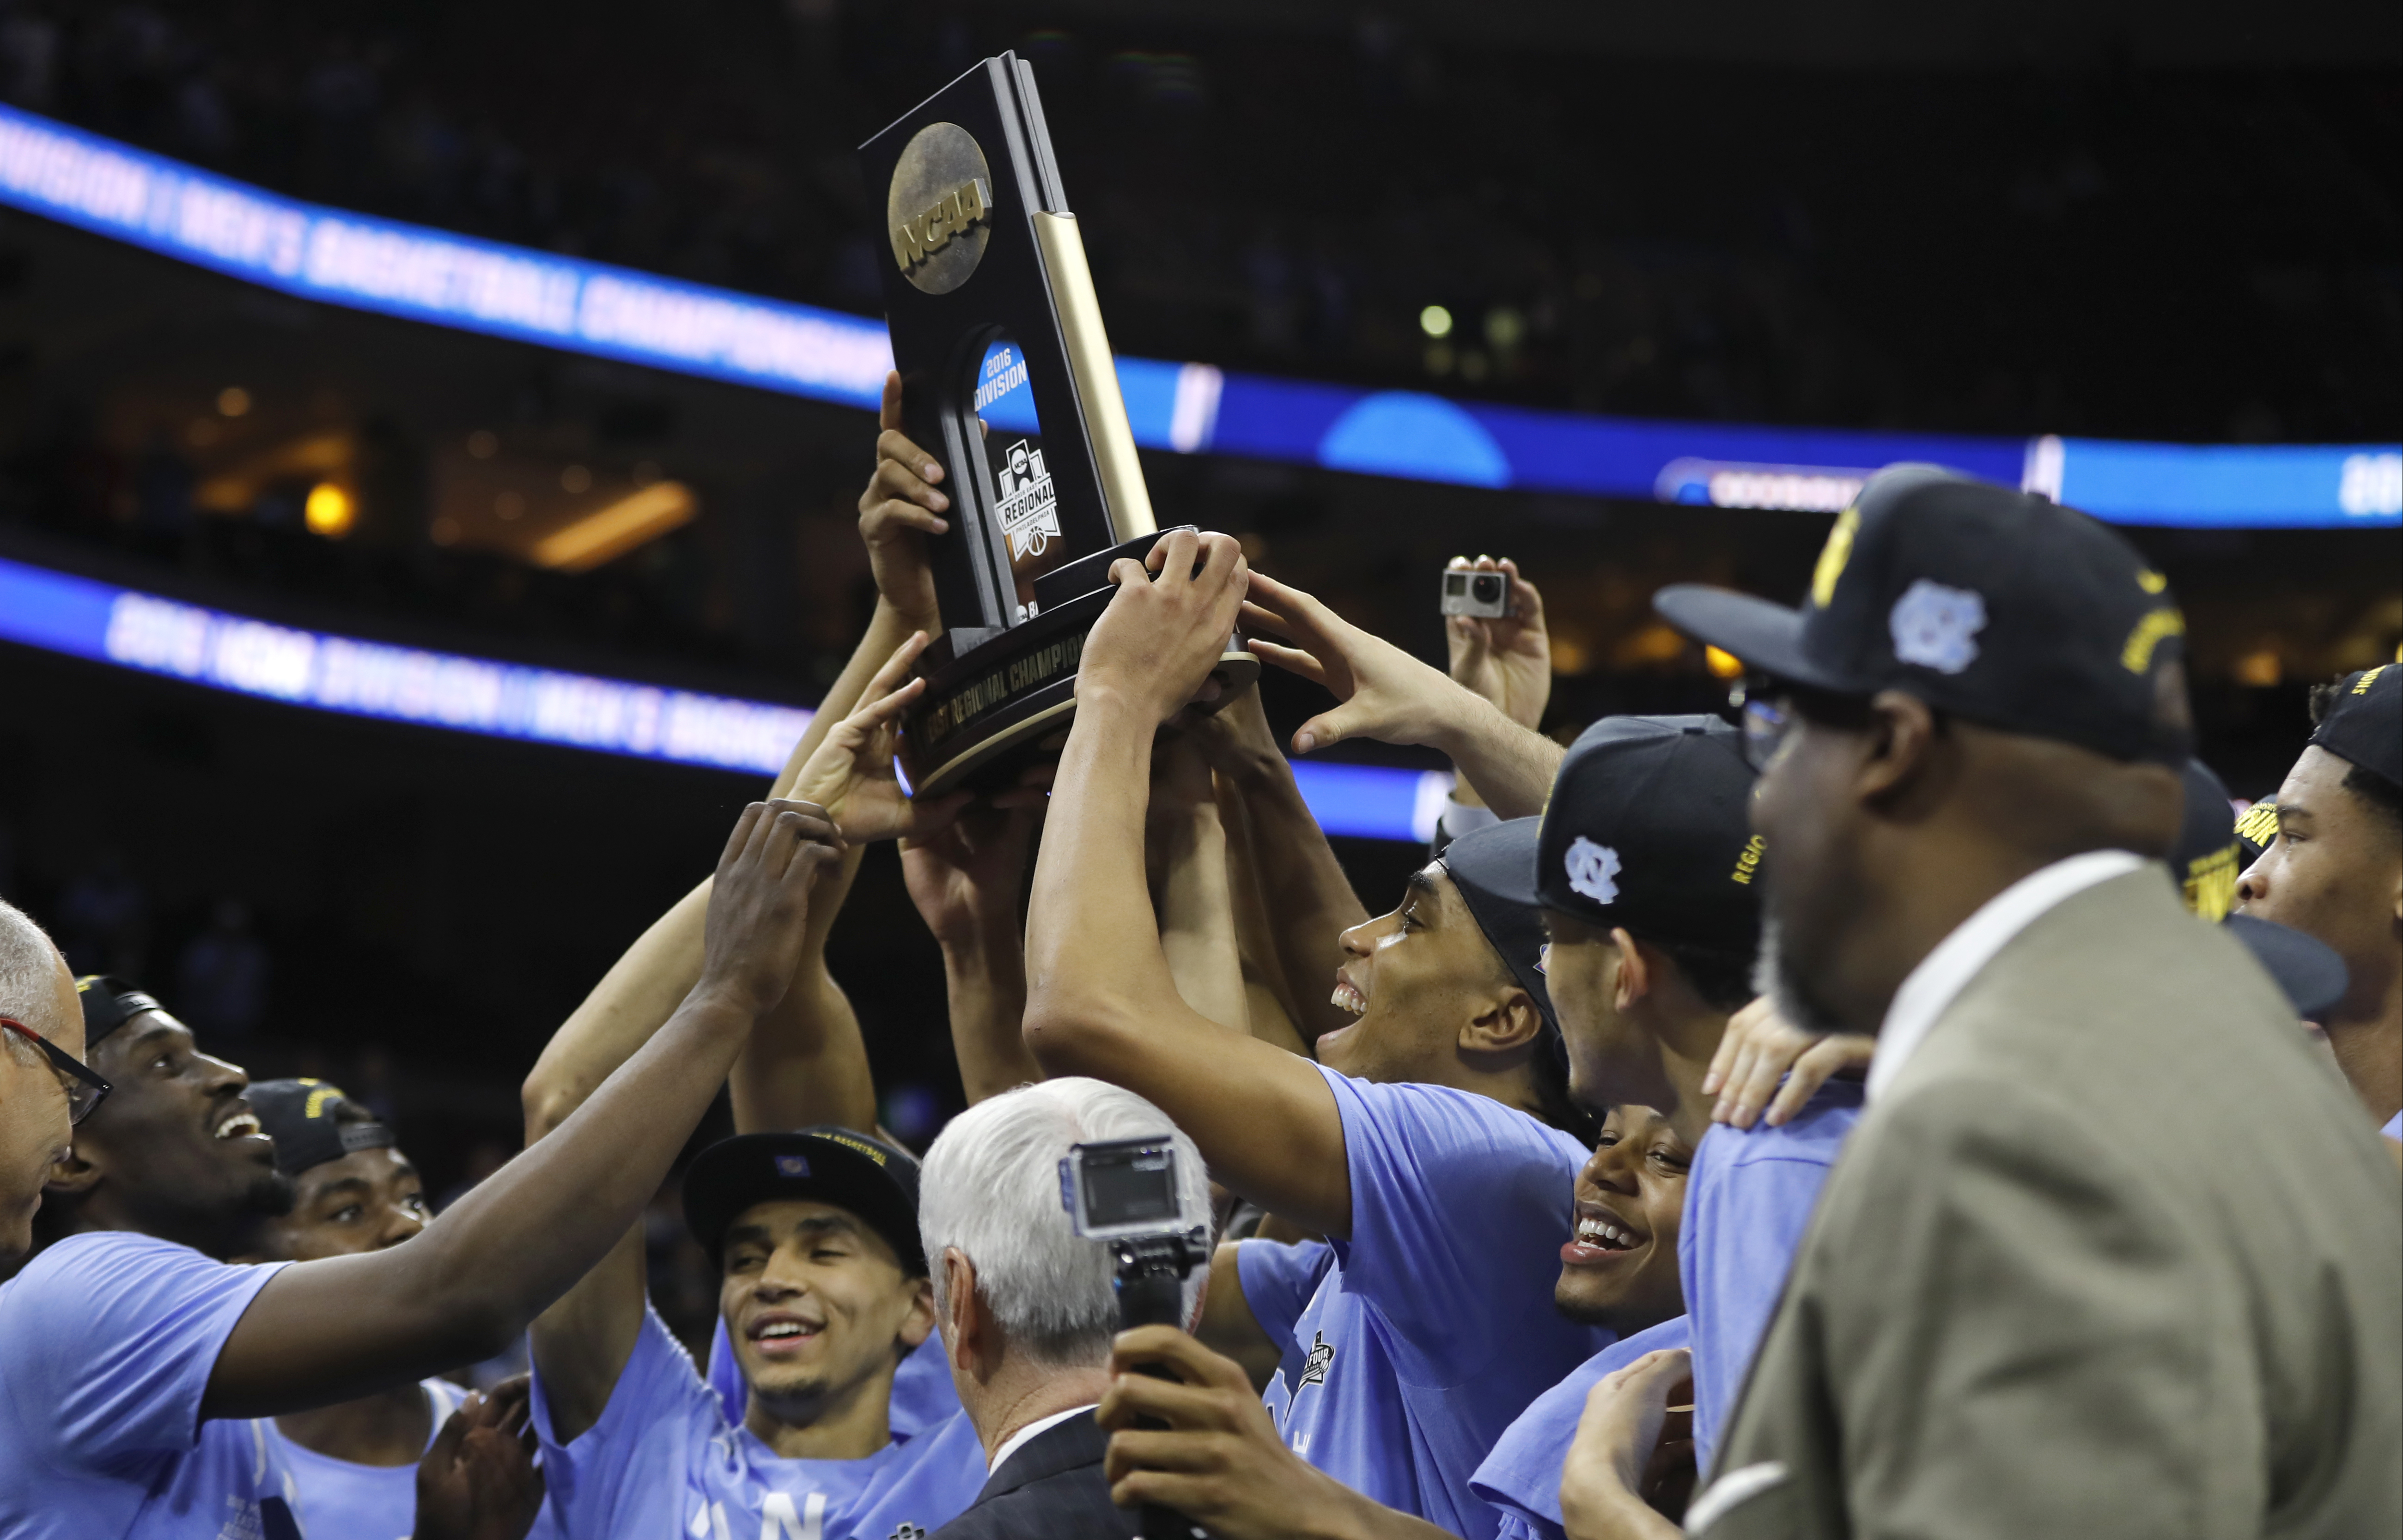 North Carolina players celebrate with the trophy after winning a regional final men's college basketball game against Notre Dame in the NCAA Tournament, Sunday, March 27, 2016, in Philadelphia. North Carolina won 88-74 to advance to the Final Four. (AP Ph